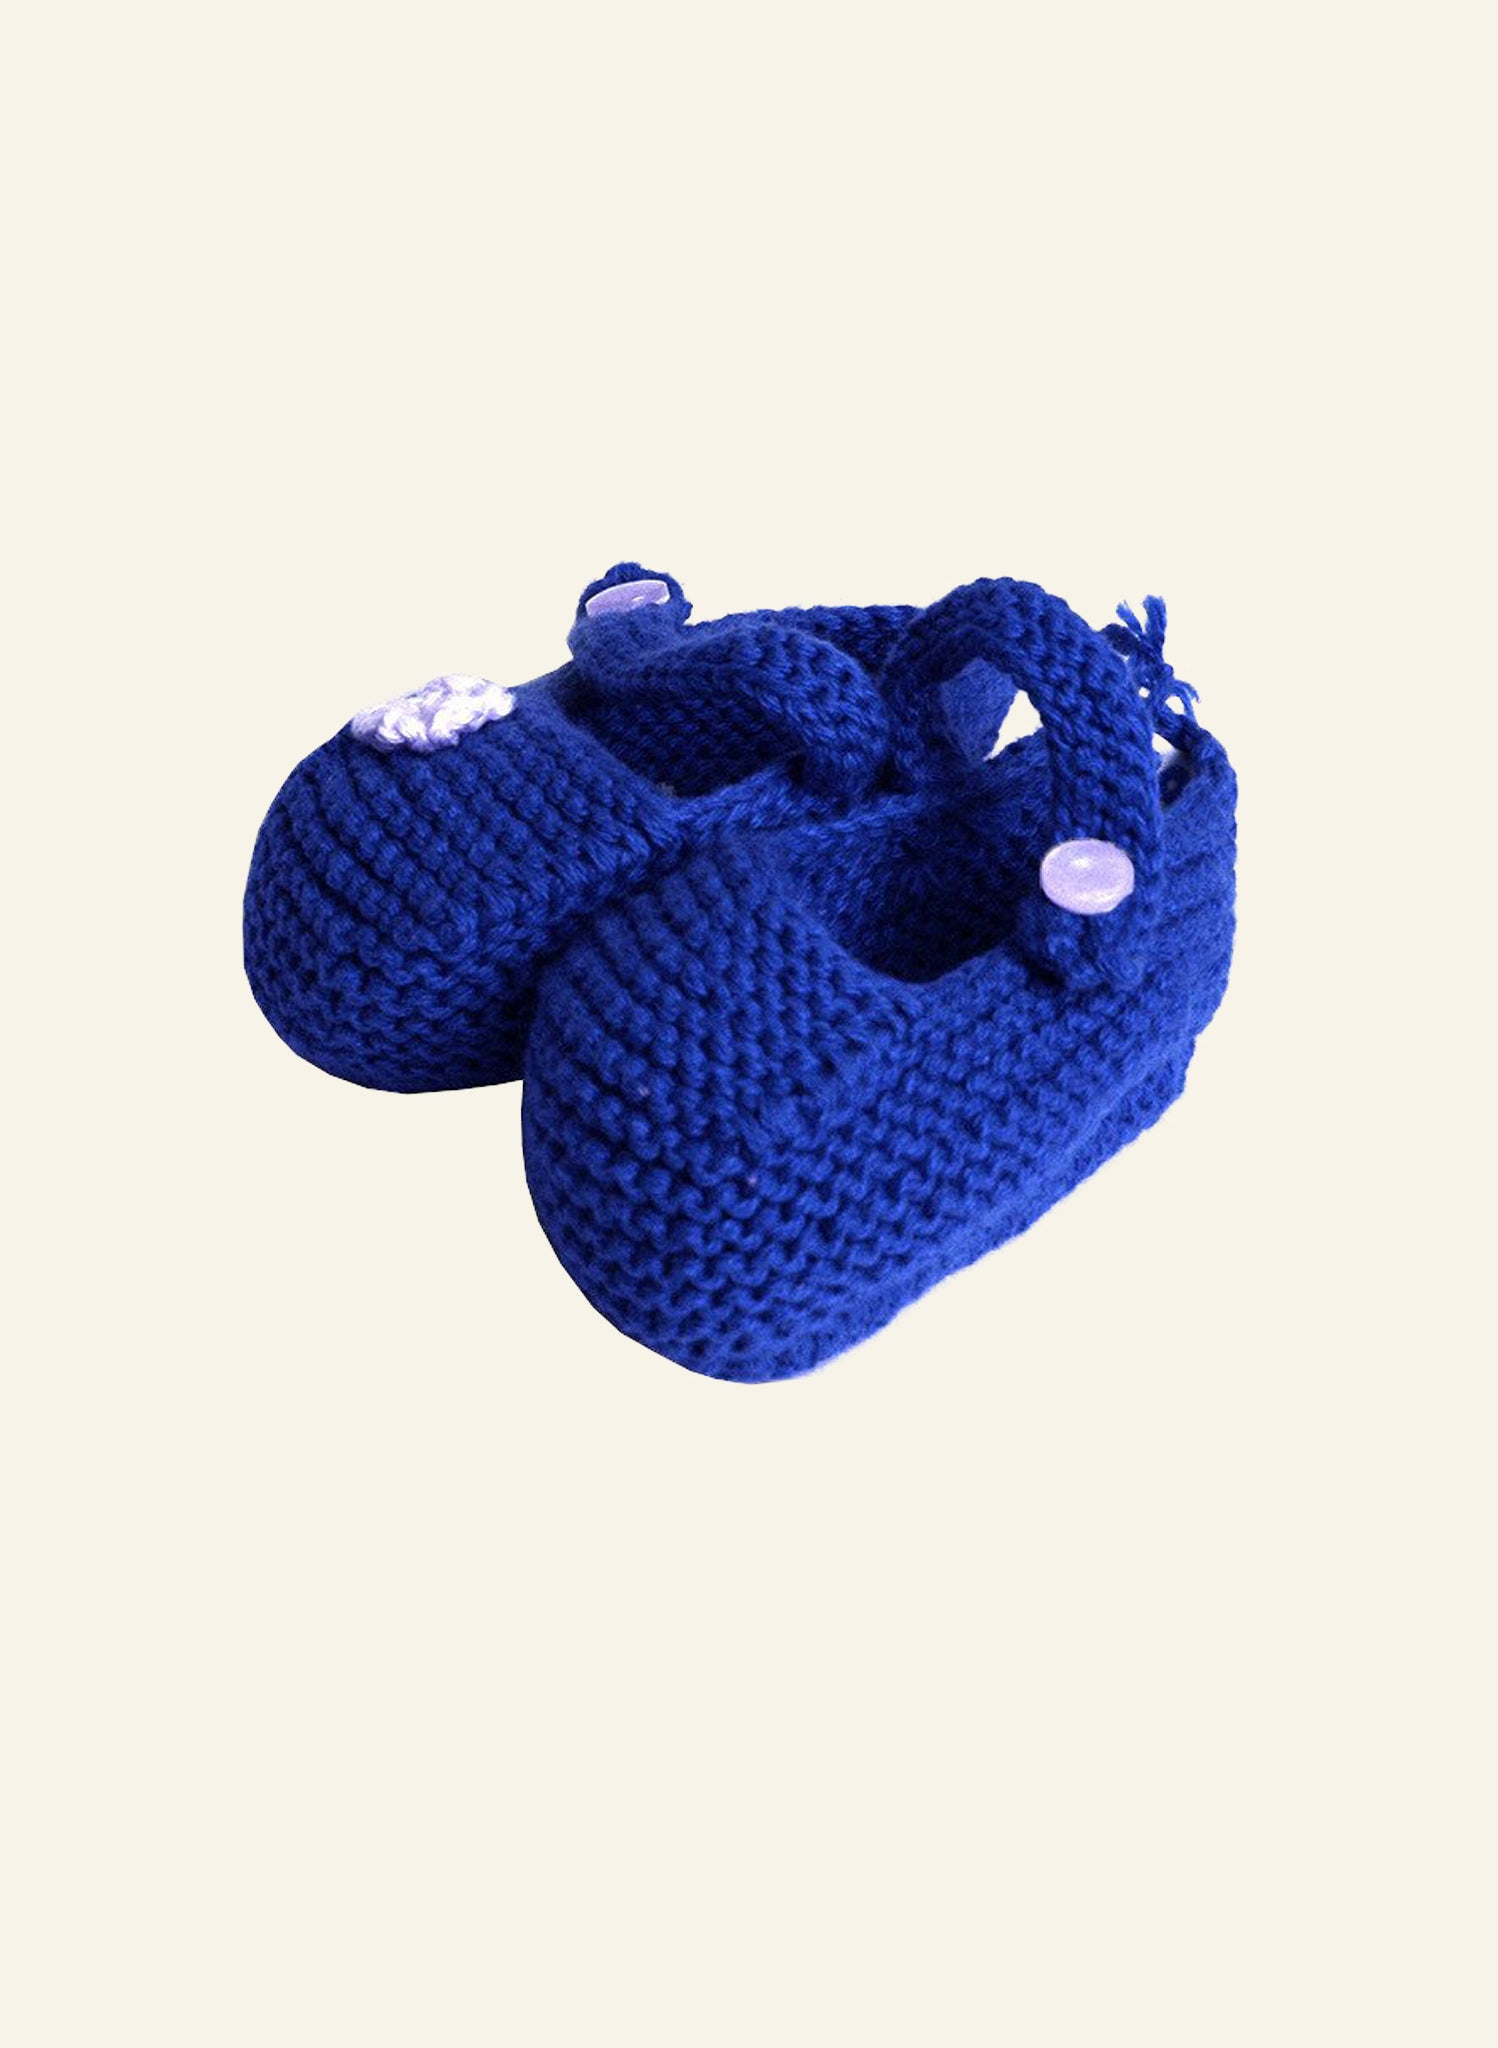 Knitted Baby Booties - Navy